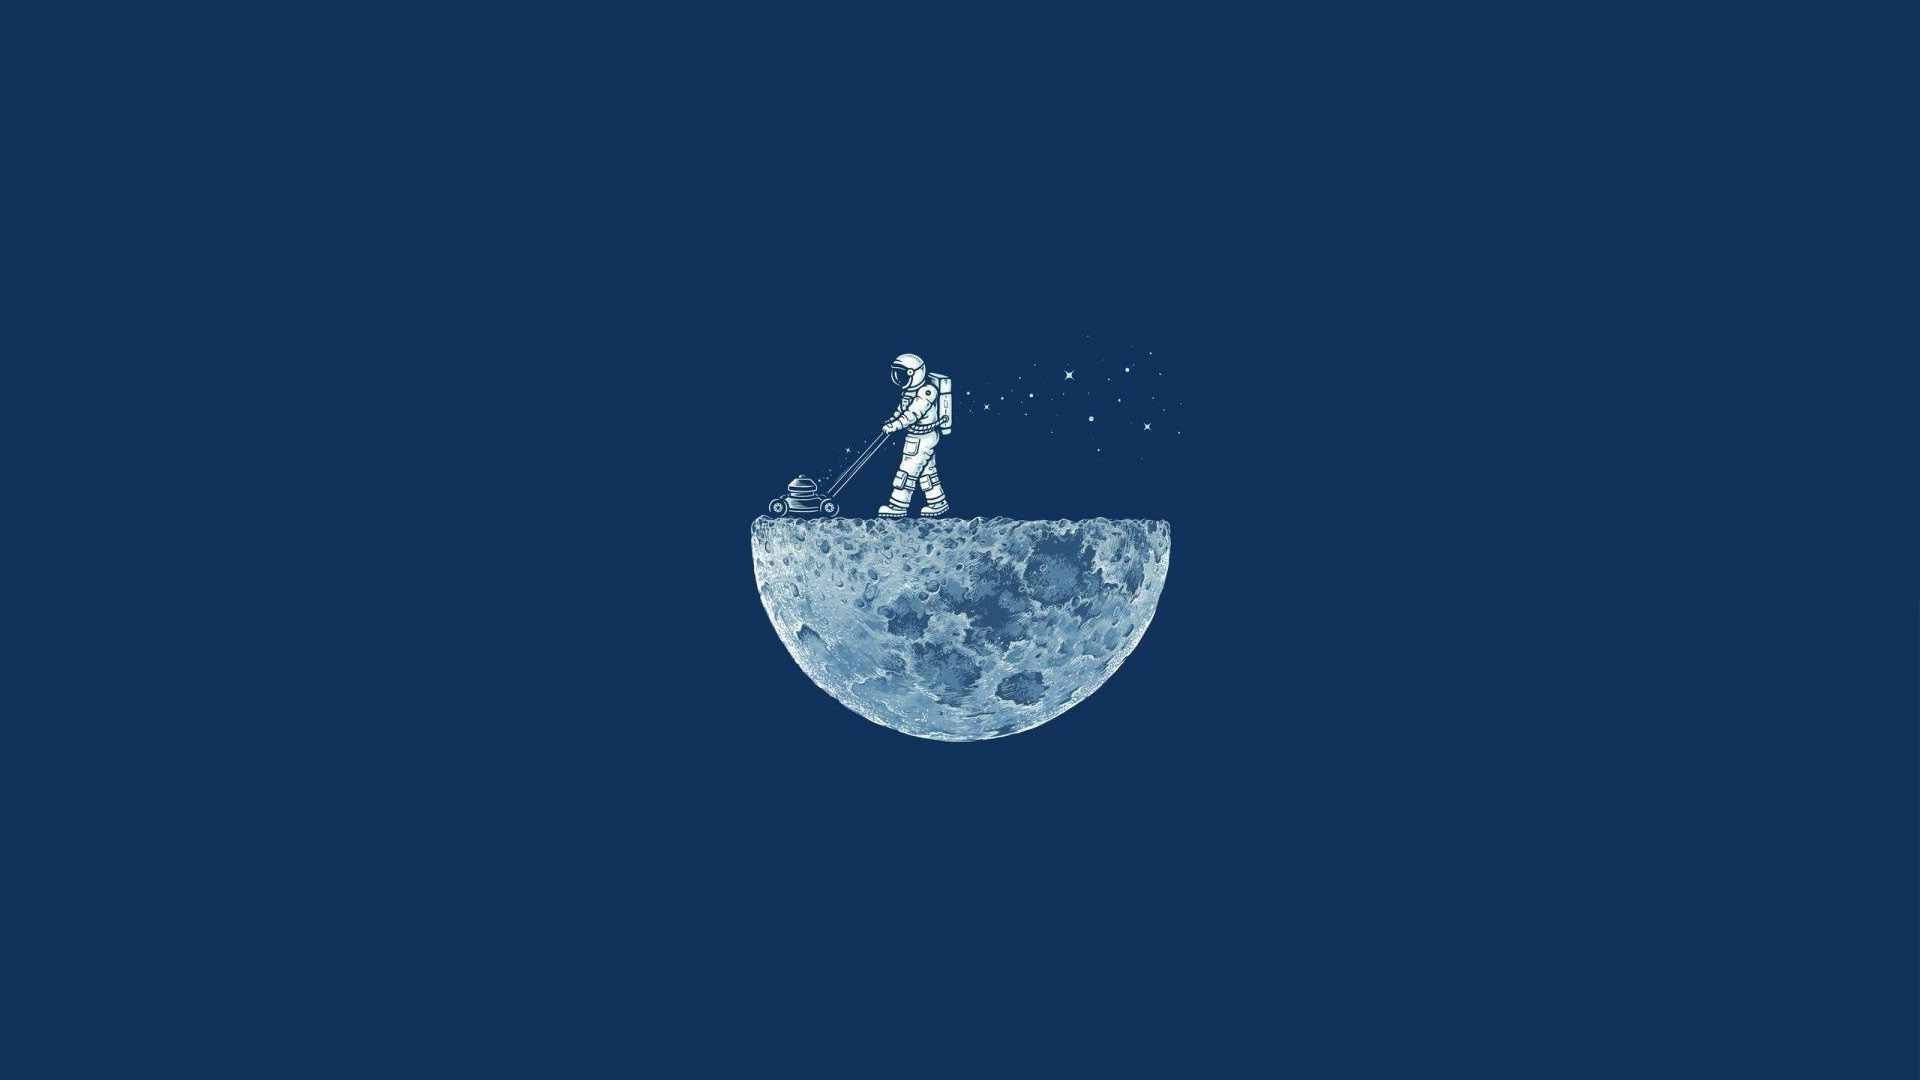 Mowing the moon